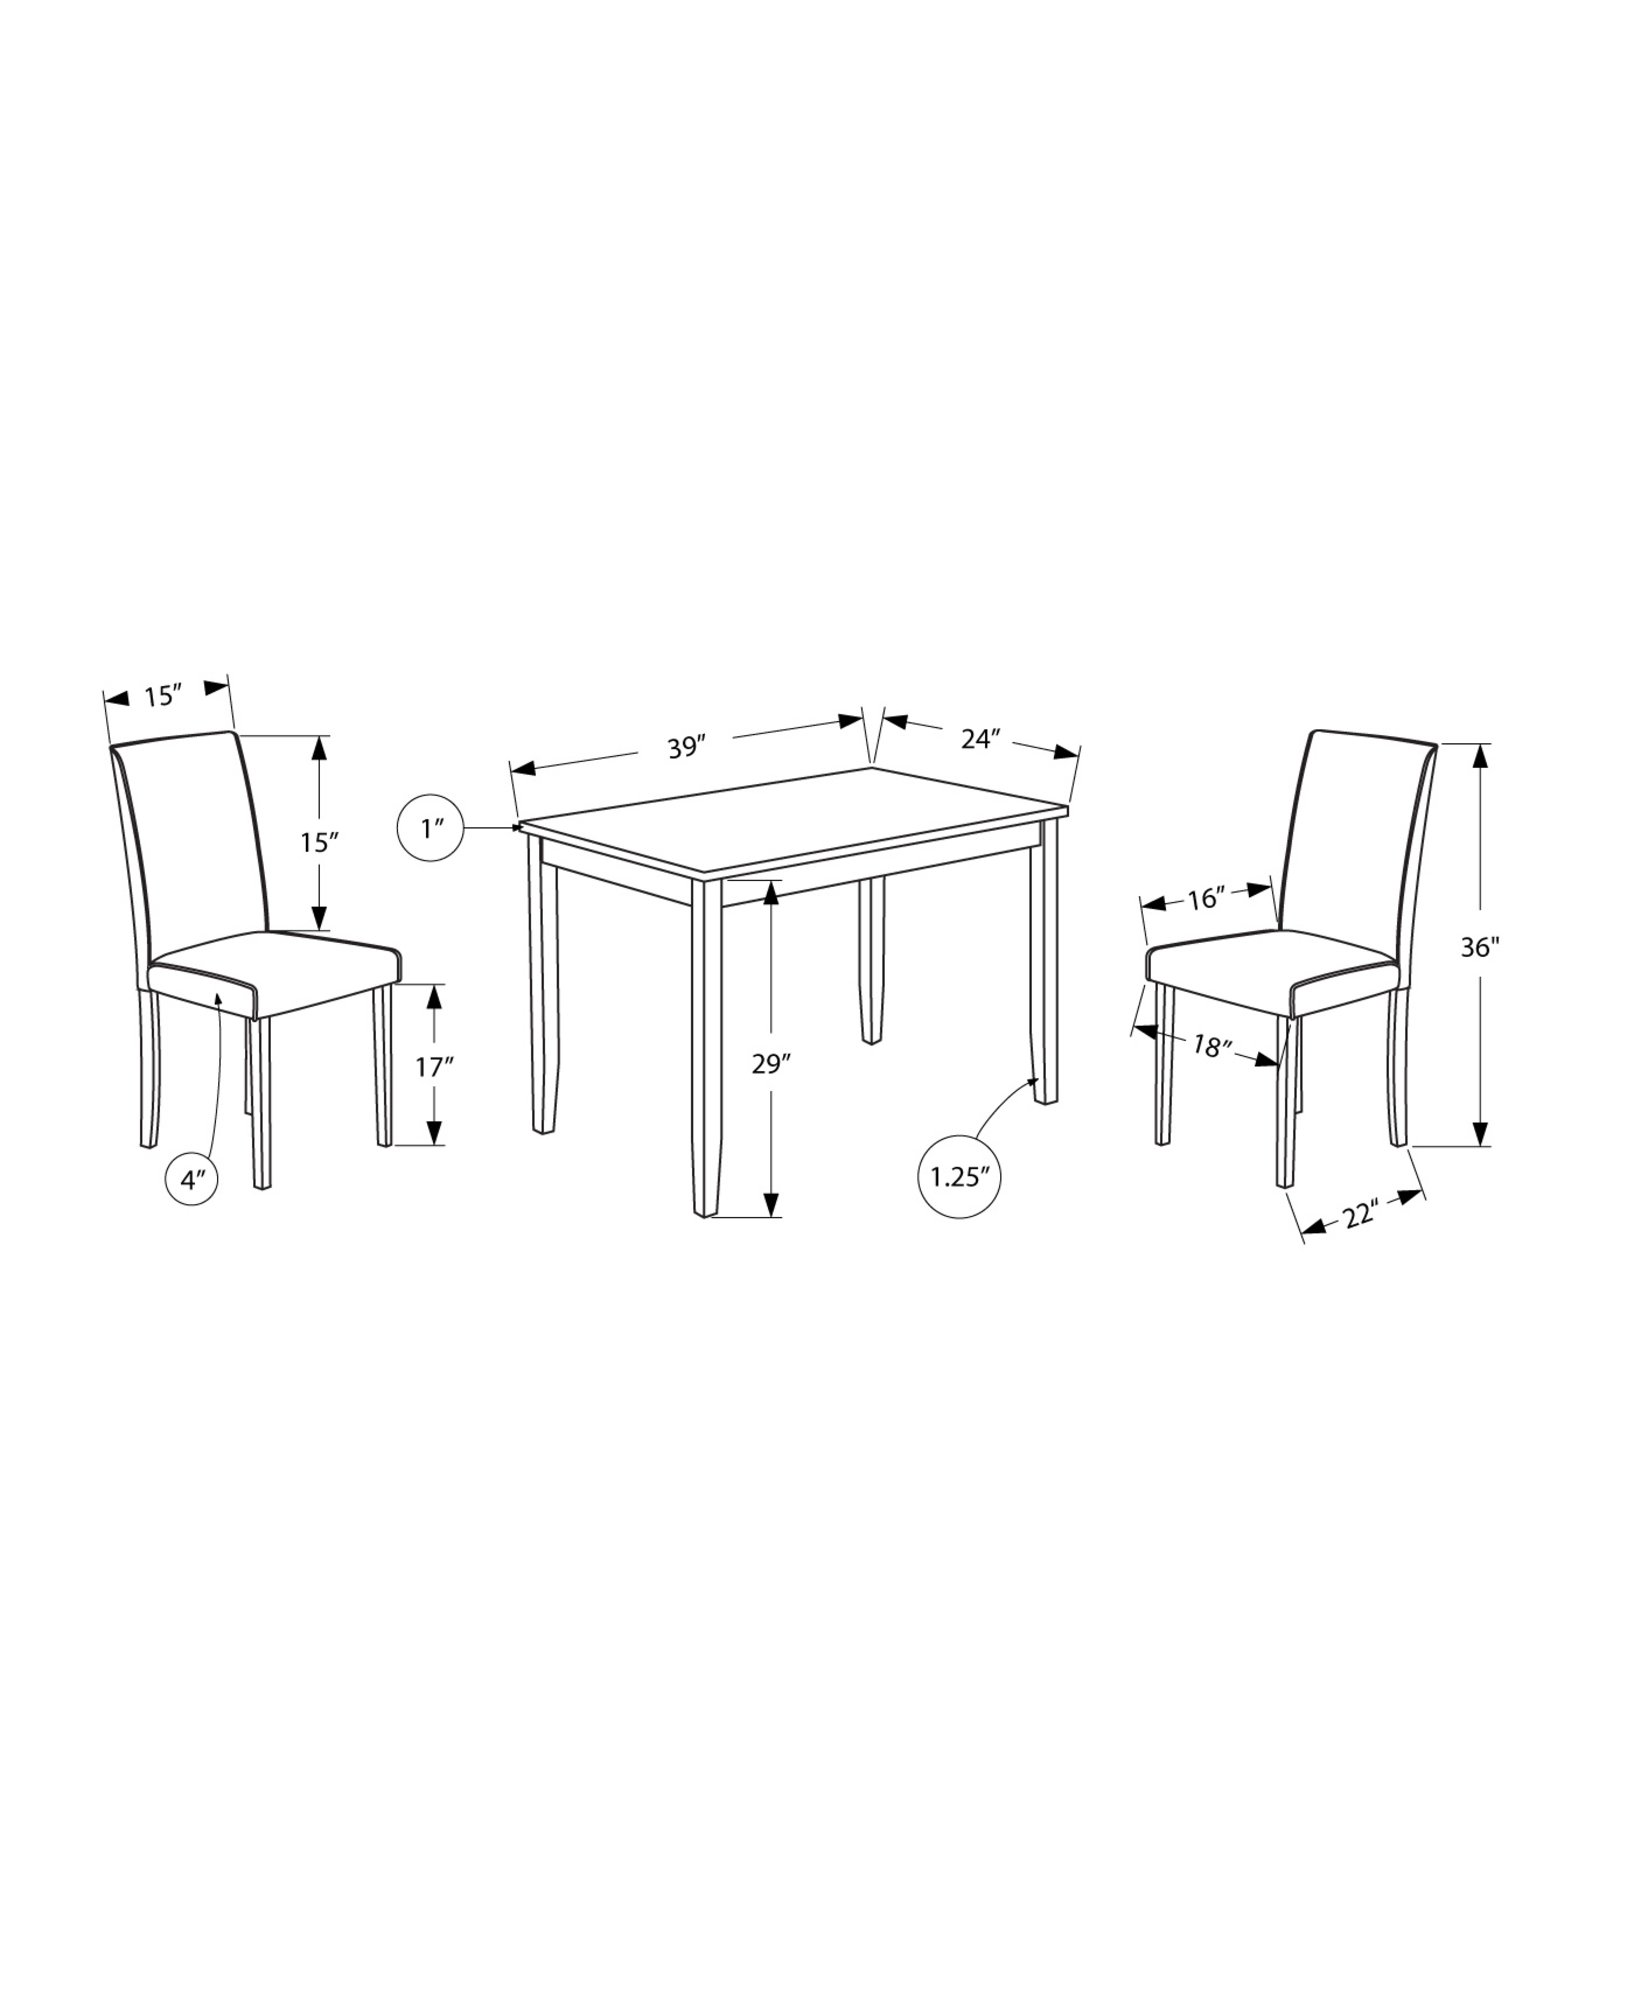 Monarch Specialties I 1016, Dining Set Set, Parson Chairs, Black/Grey, 3pcs by Monarch Specialties (Image #3)